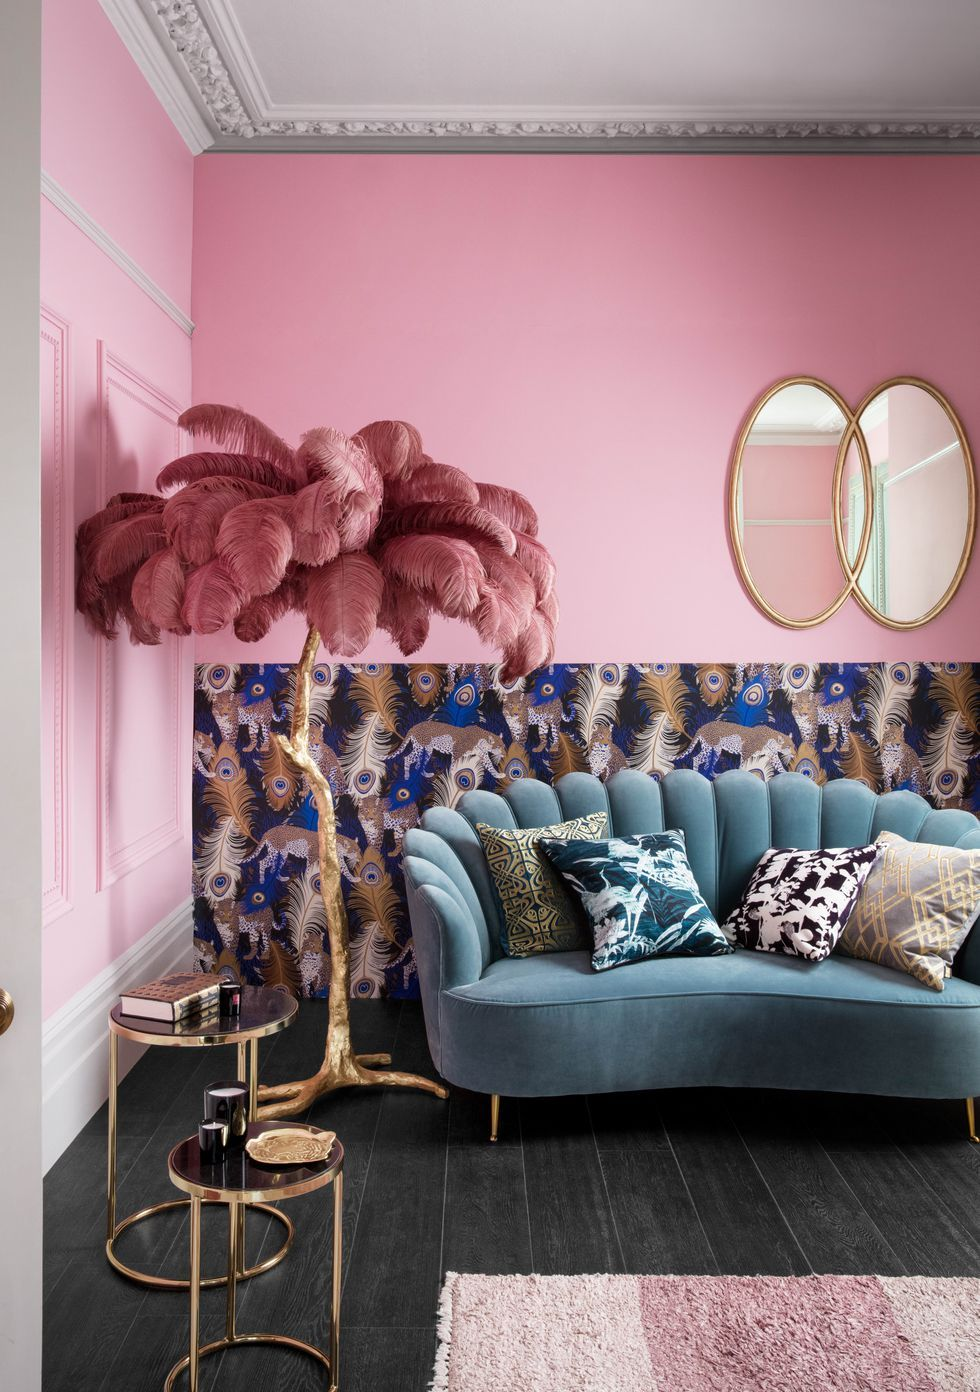 living room, black wooden floor, blue velvet sofa, pink wall, patterned wall, mirrors, golden nesting side table